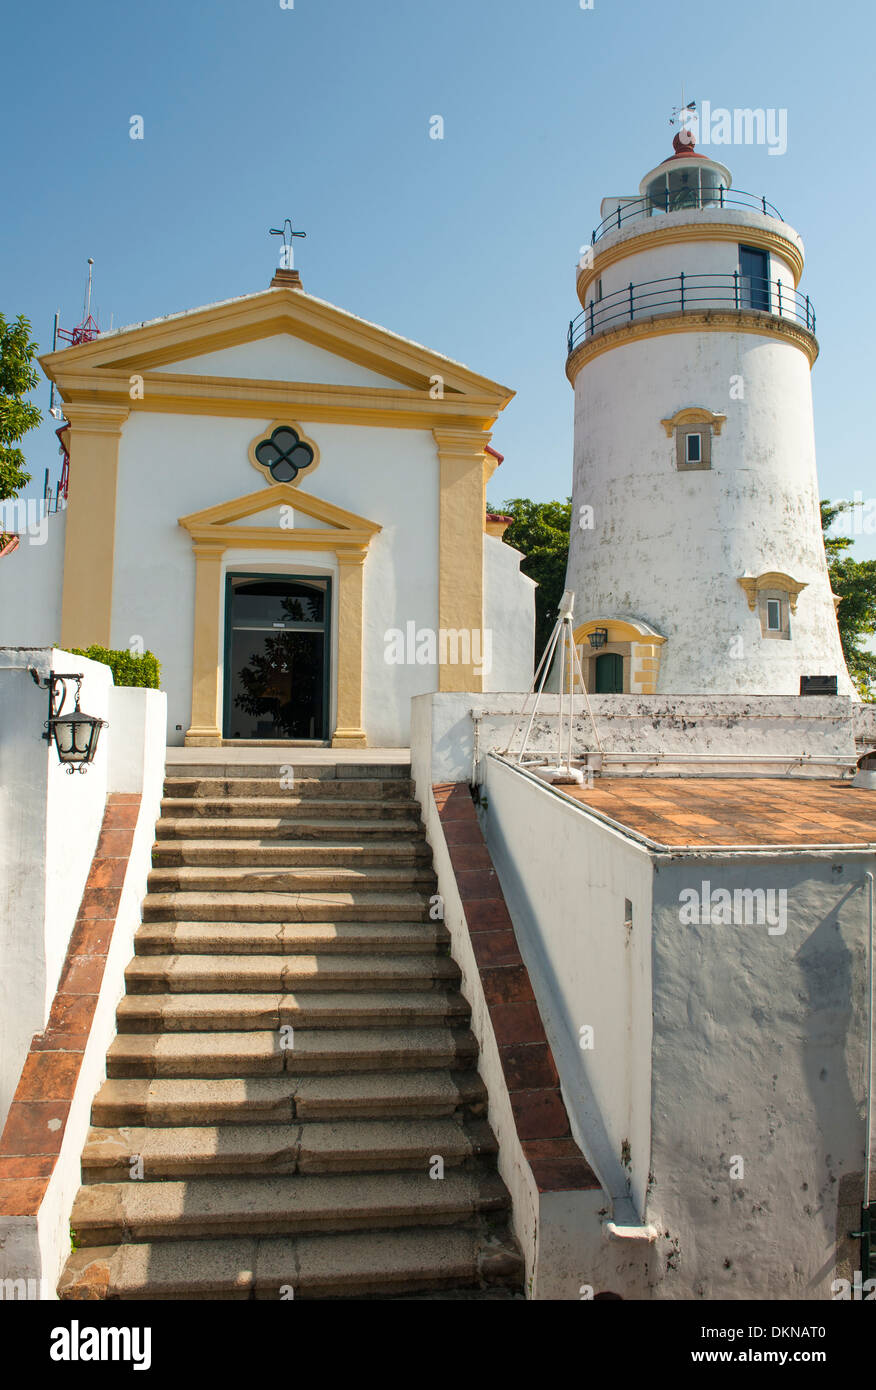 Guia Lighthouse, fort and church at Macau, a former Portuguese colony and today world heritage in China - Stock Image